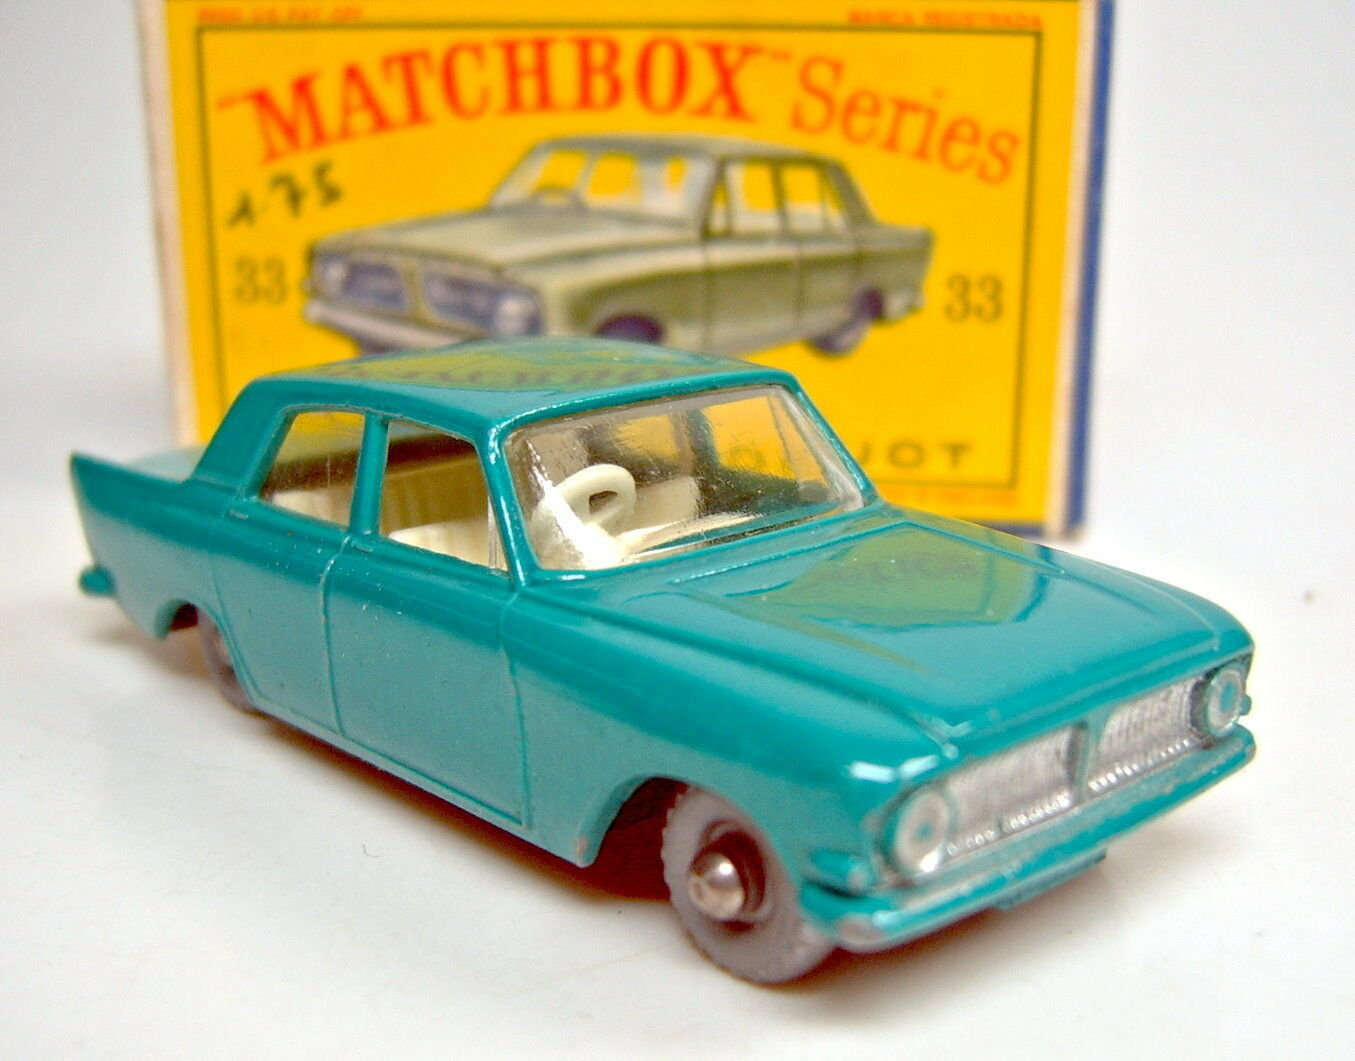 Matchbox RW 33B Ford Zephyr türkisgreen silverne Räder in  D  Box